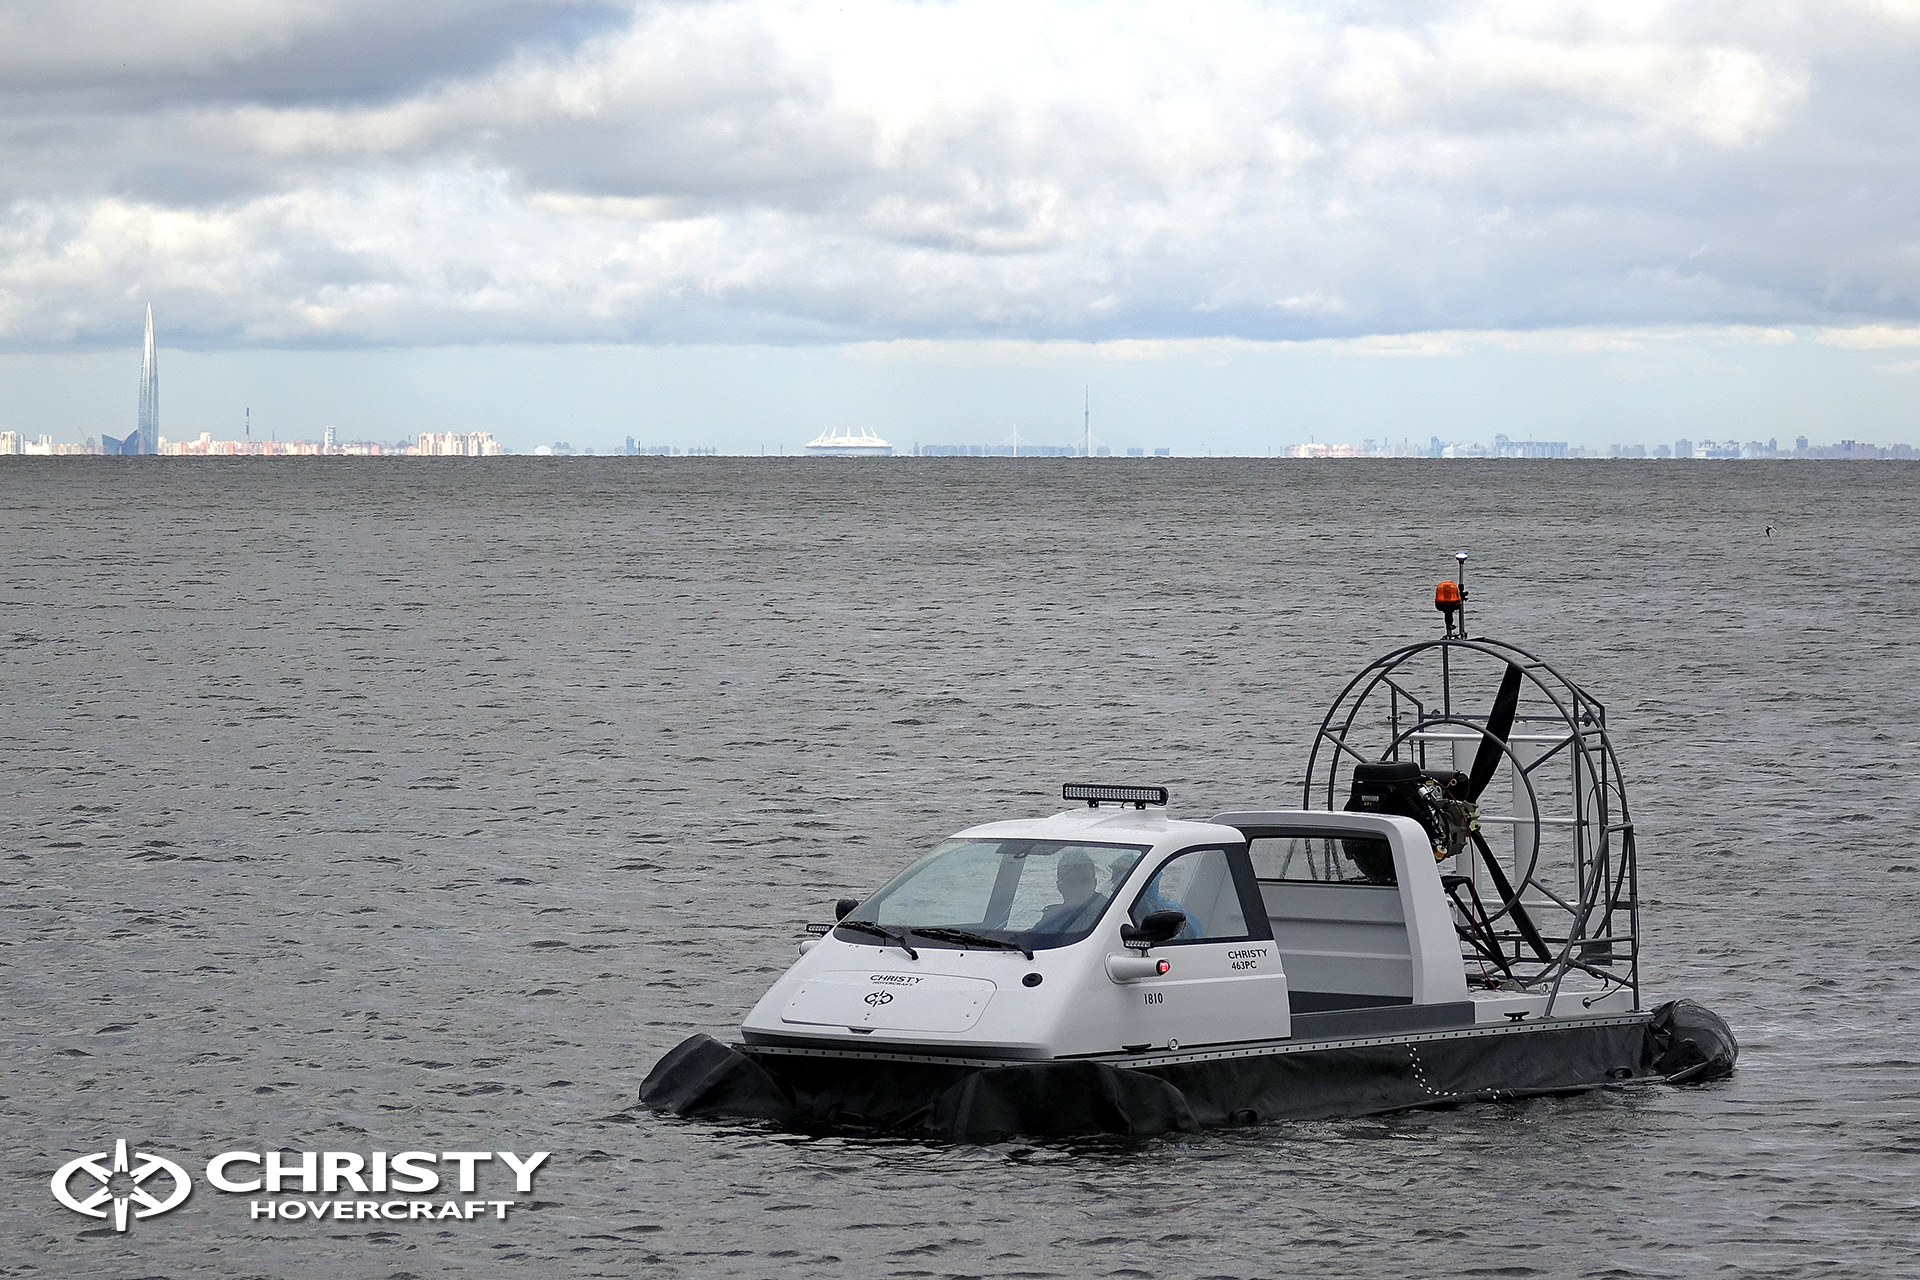 Hovercraft Christy 463 PC in Storm 290618 21.jpg | фото №20